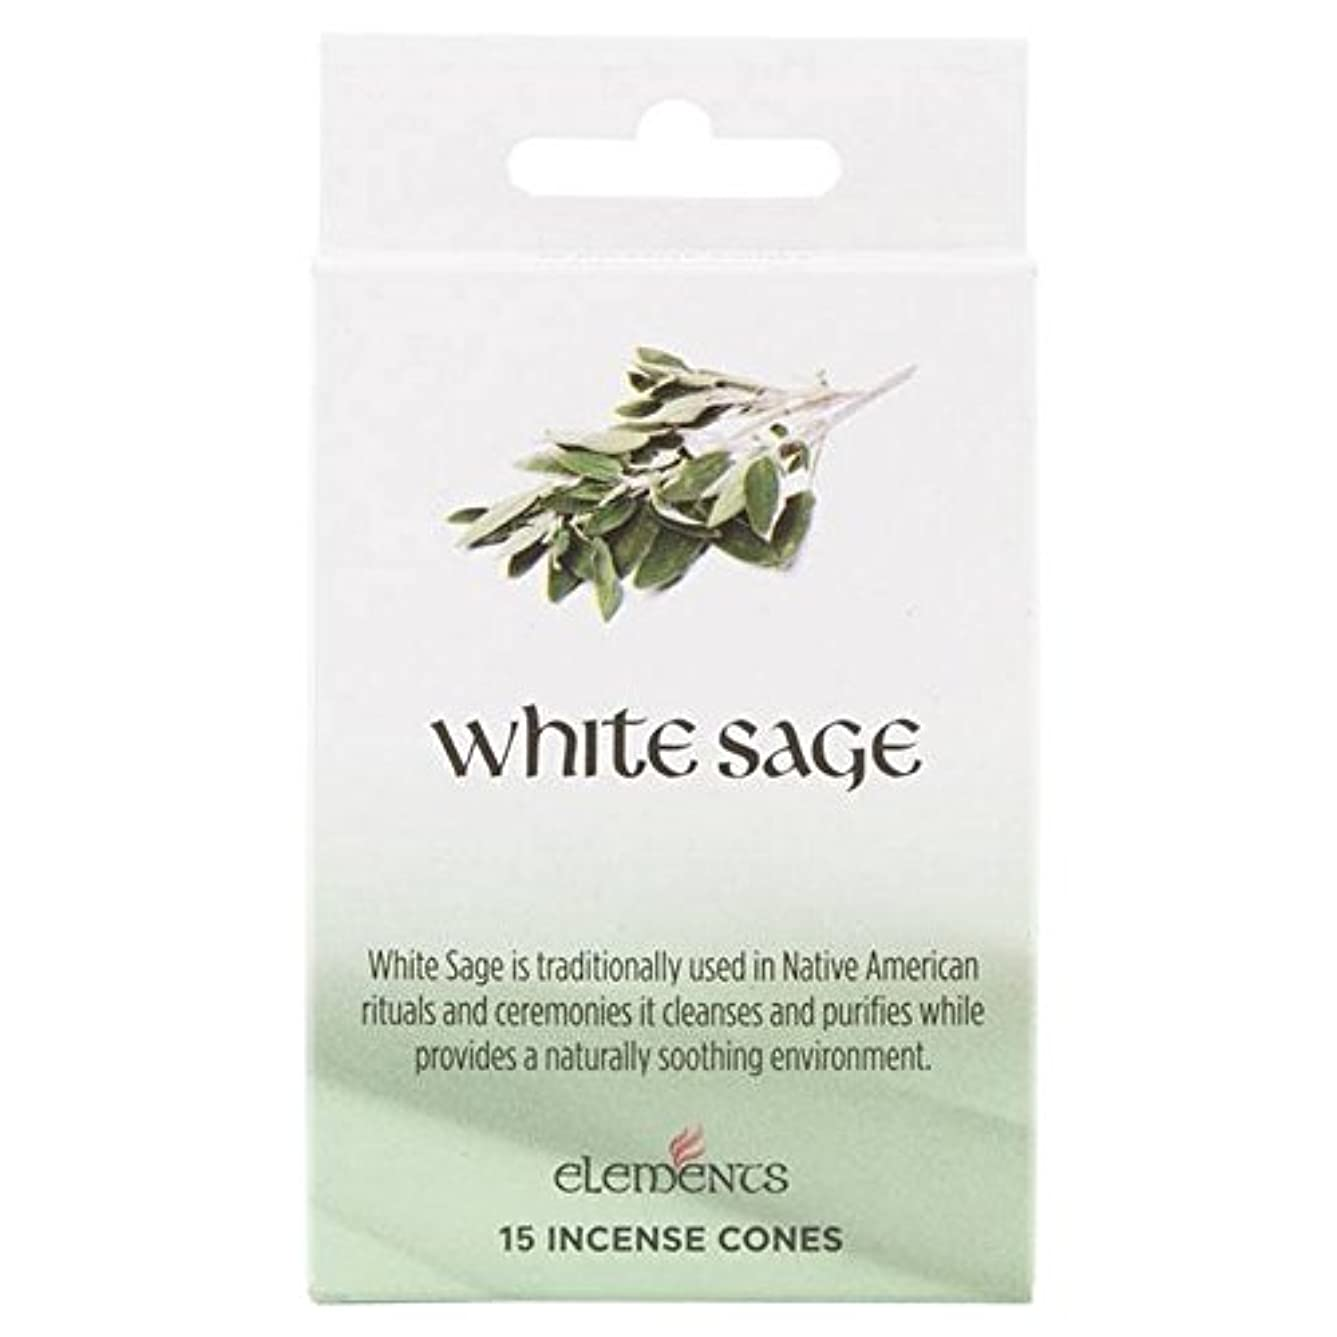 晩餐集団的陸軍12 Packs Of Elements White Sage Incense Cones